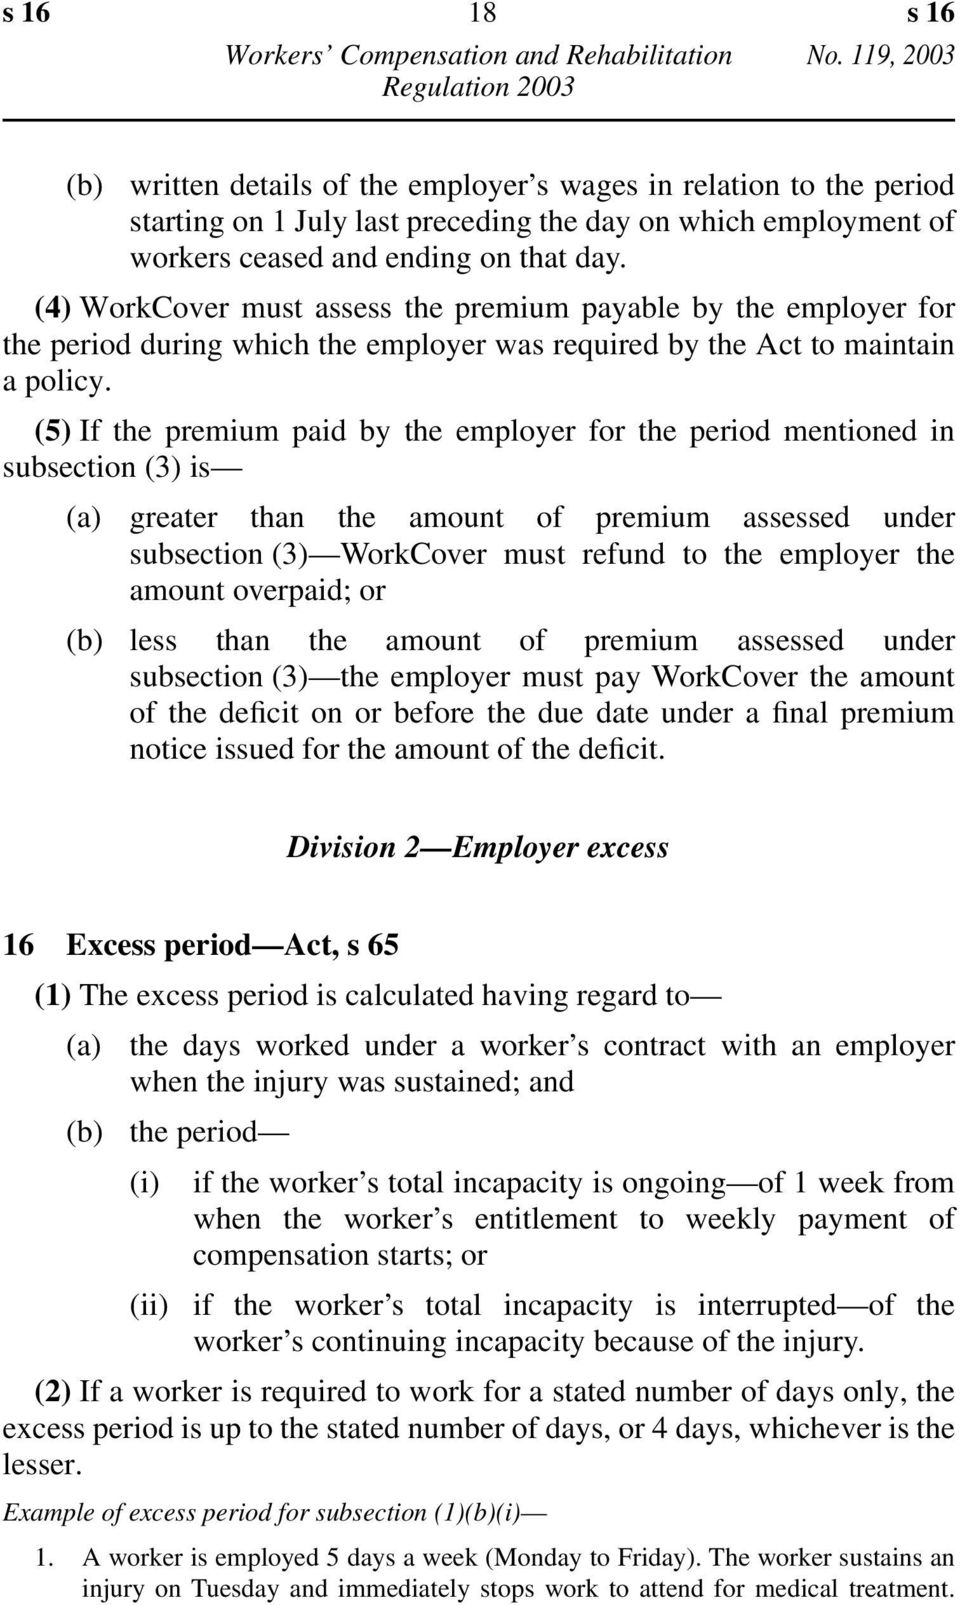 (5) If the premium paid by the employer for the period mentioned in subsection (3) is (a) greater than the amount of premium assessed under subsection (3) WorkCover must refund to the employer the